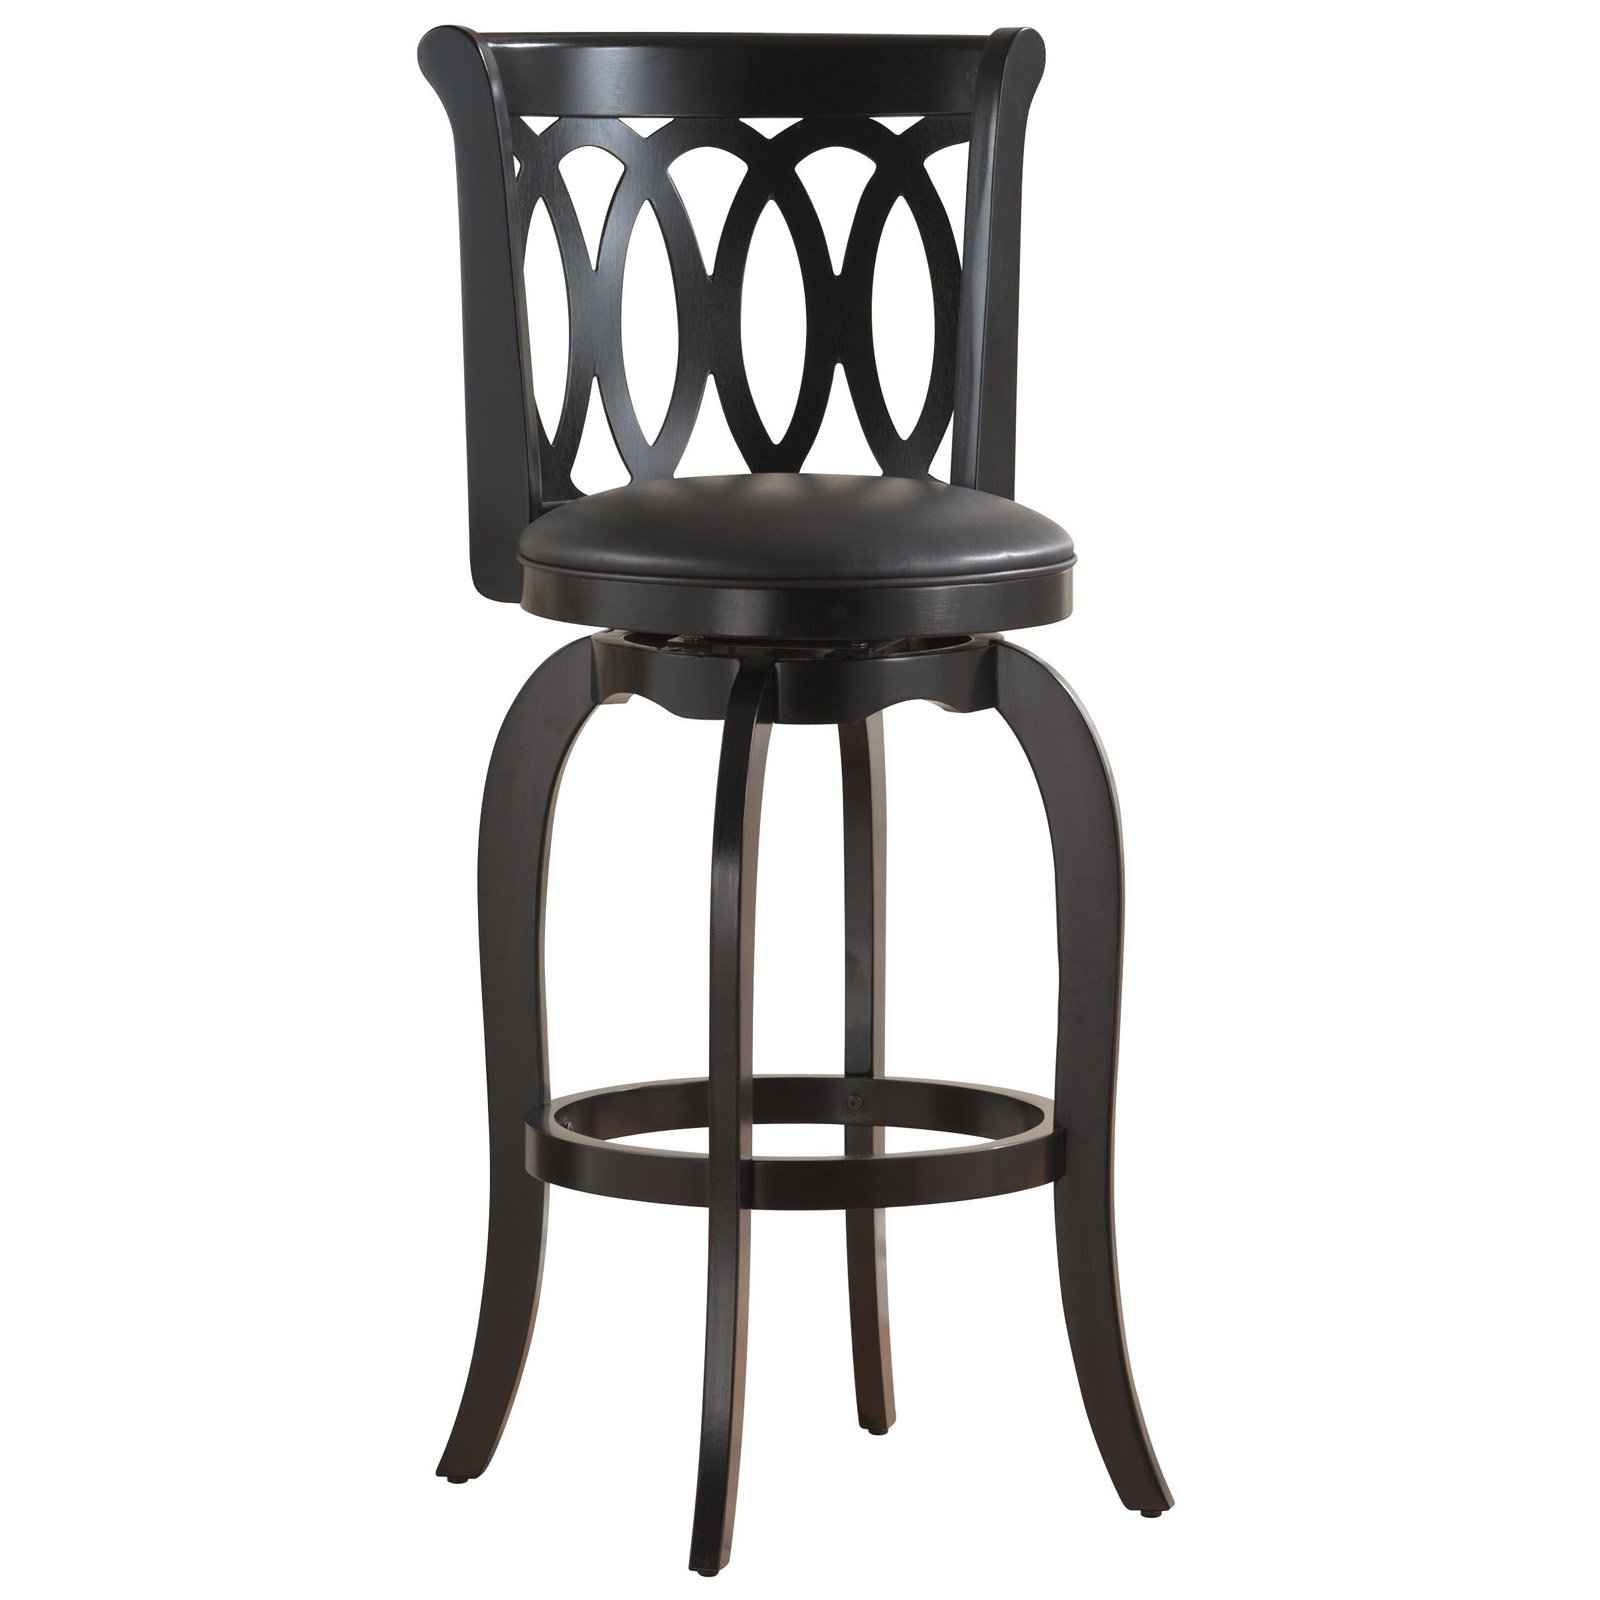 bar chairs with backs log style adirondack cheap stools products review